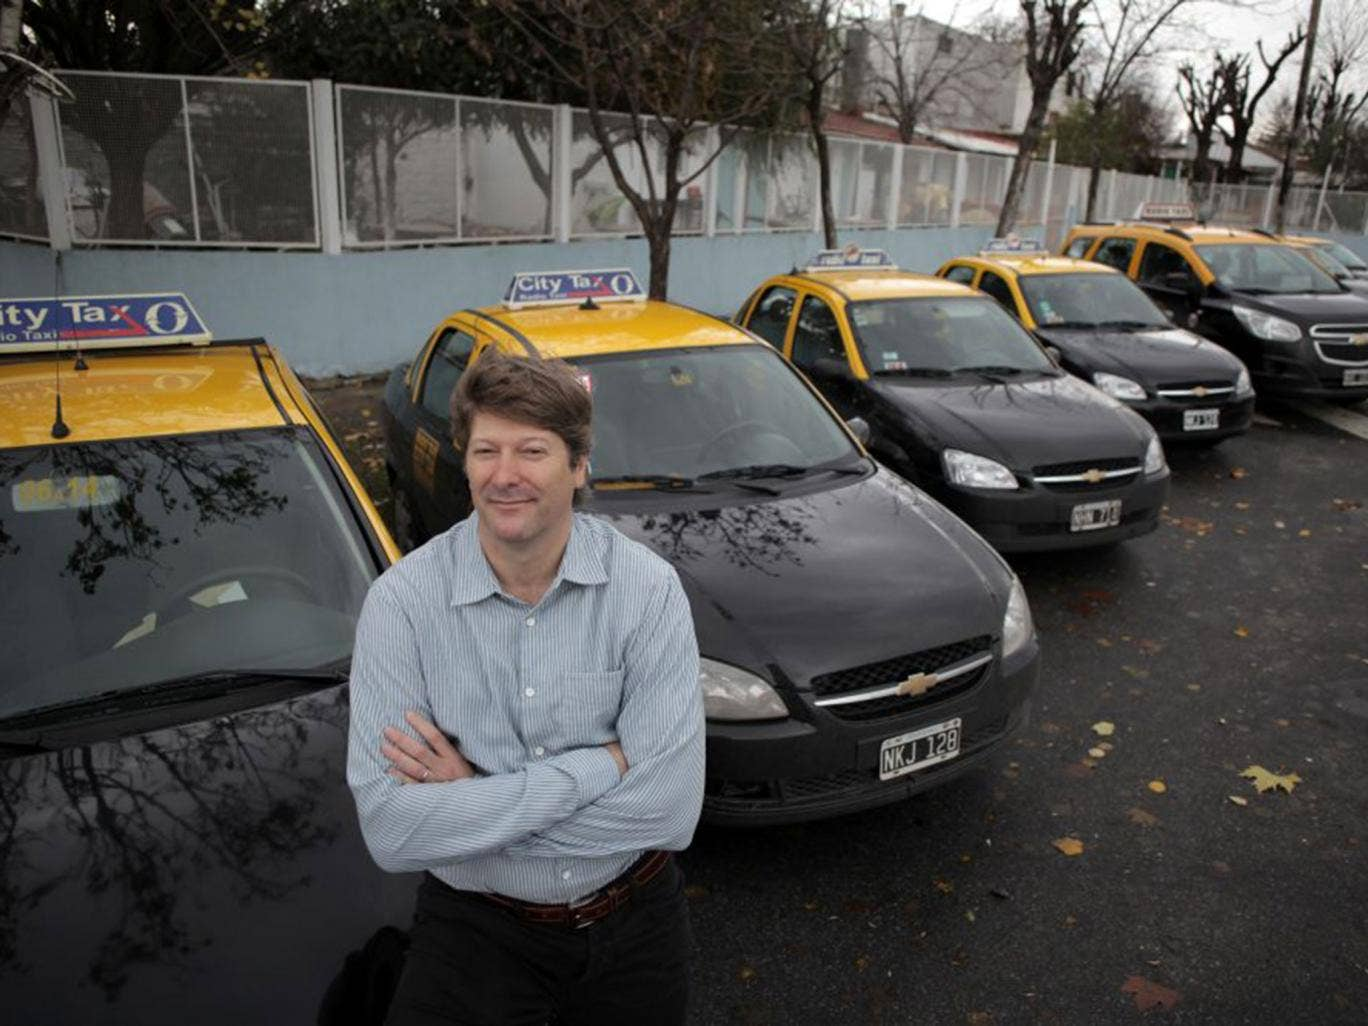 Russell Abrams, a former Goldman Sachs trader, intends to buy 1,000 more Argentinian taxi licences